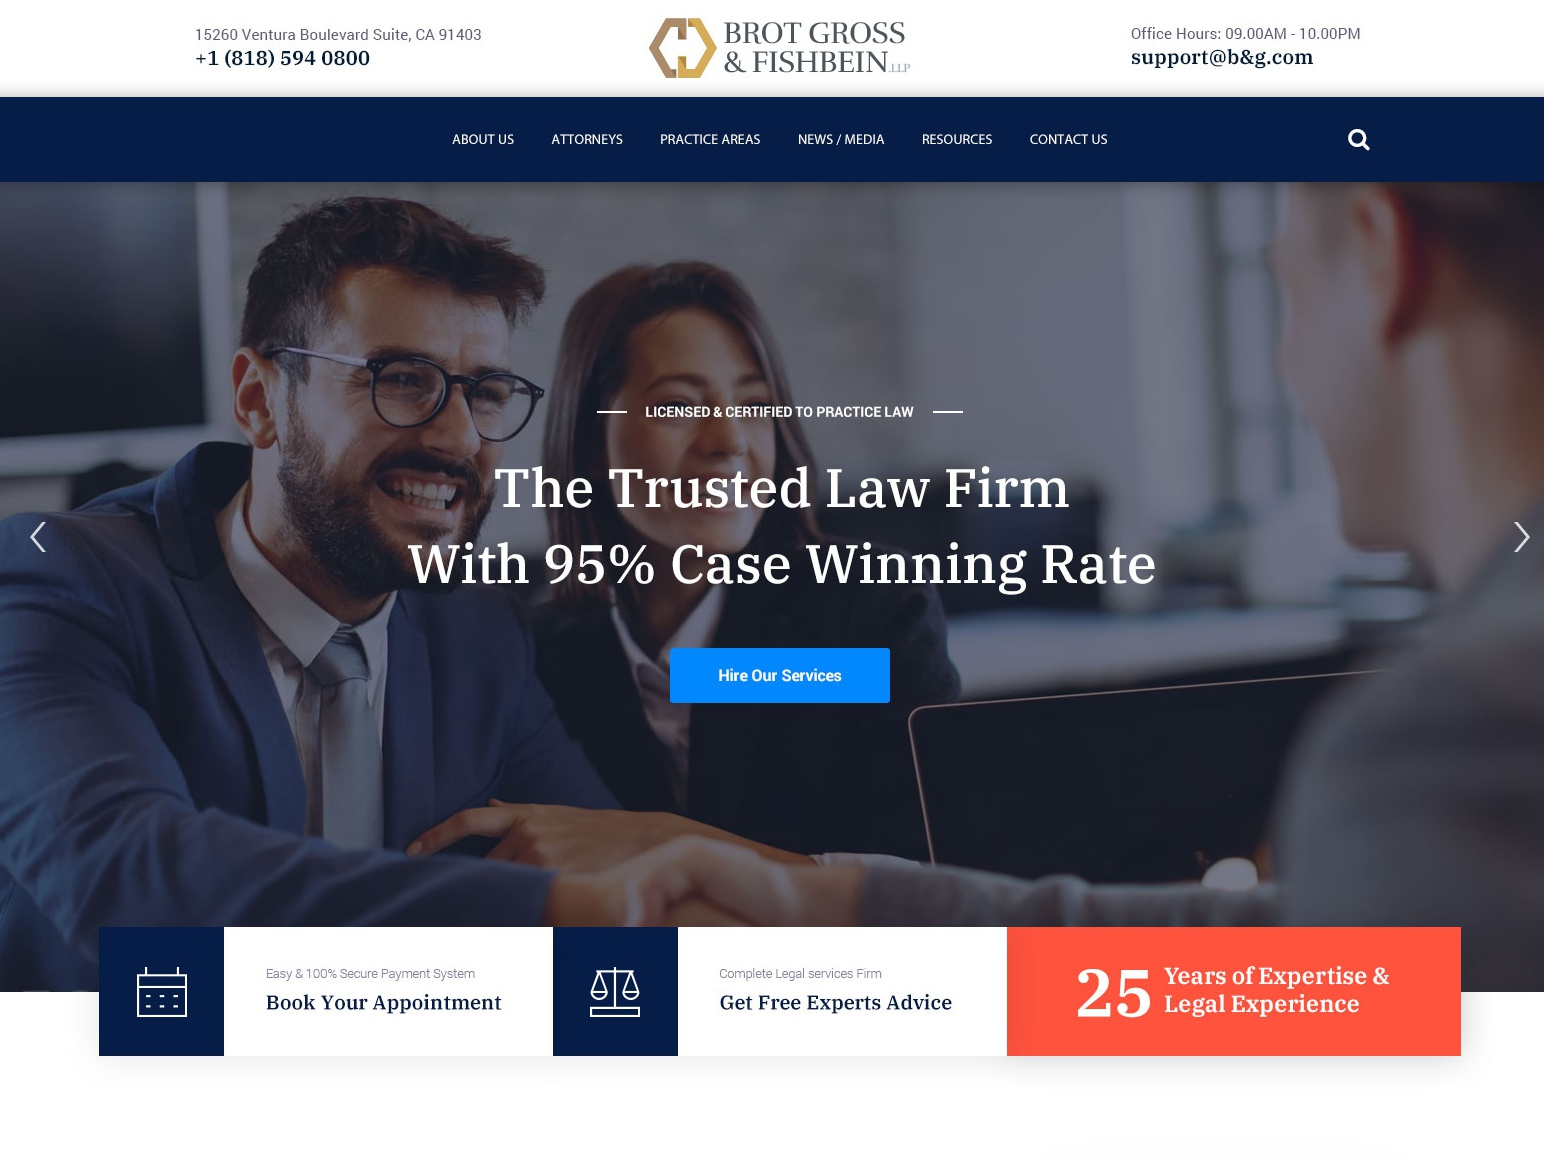 BGF Law Firm Home Page design home screen typography freelance branding wordpress icons illustration freelancer website lawfirm website law firm lawfirm website design wordpress theme template design wordpress design theme landing page home page